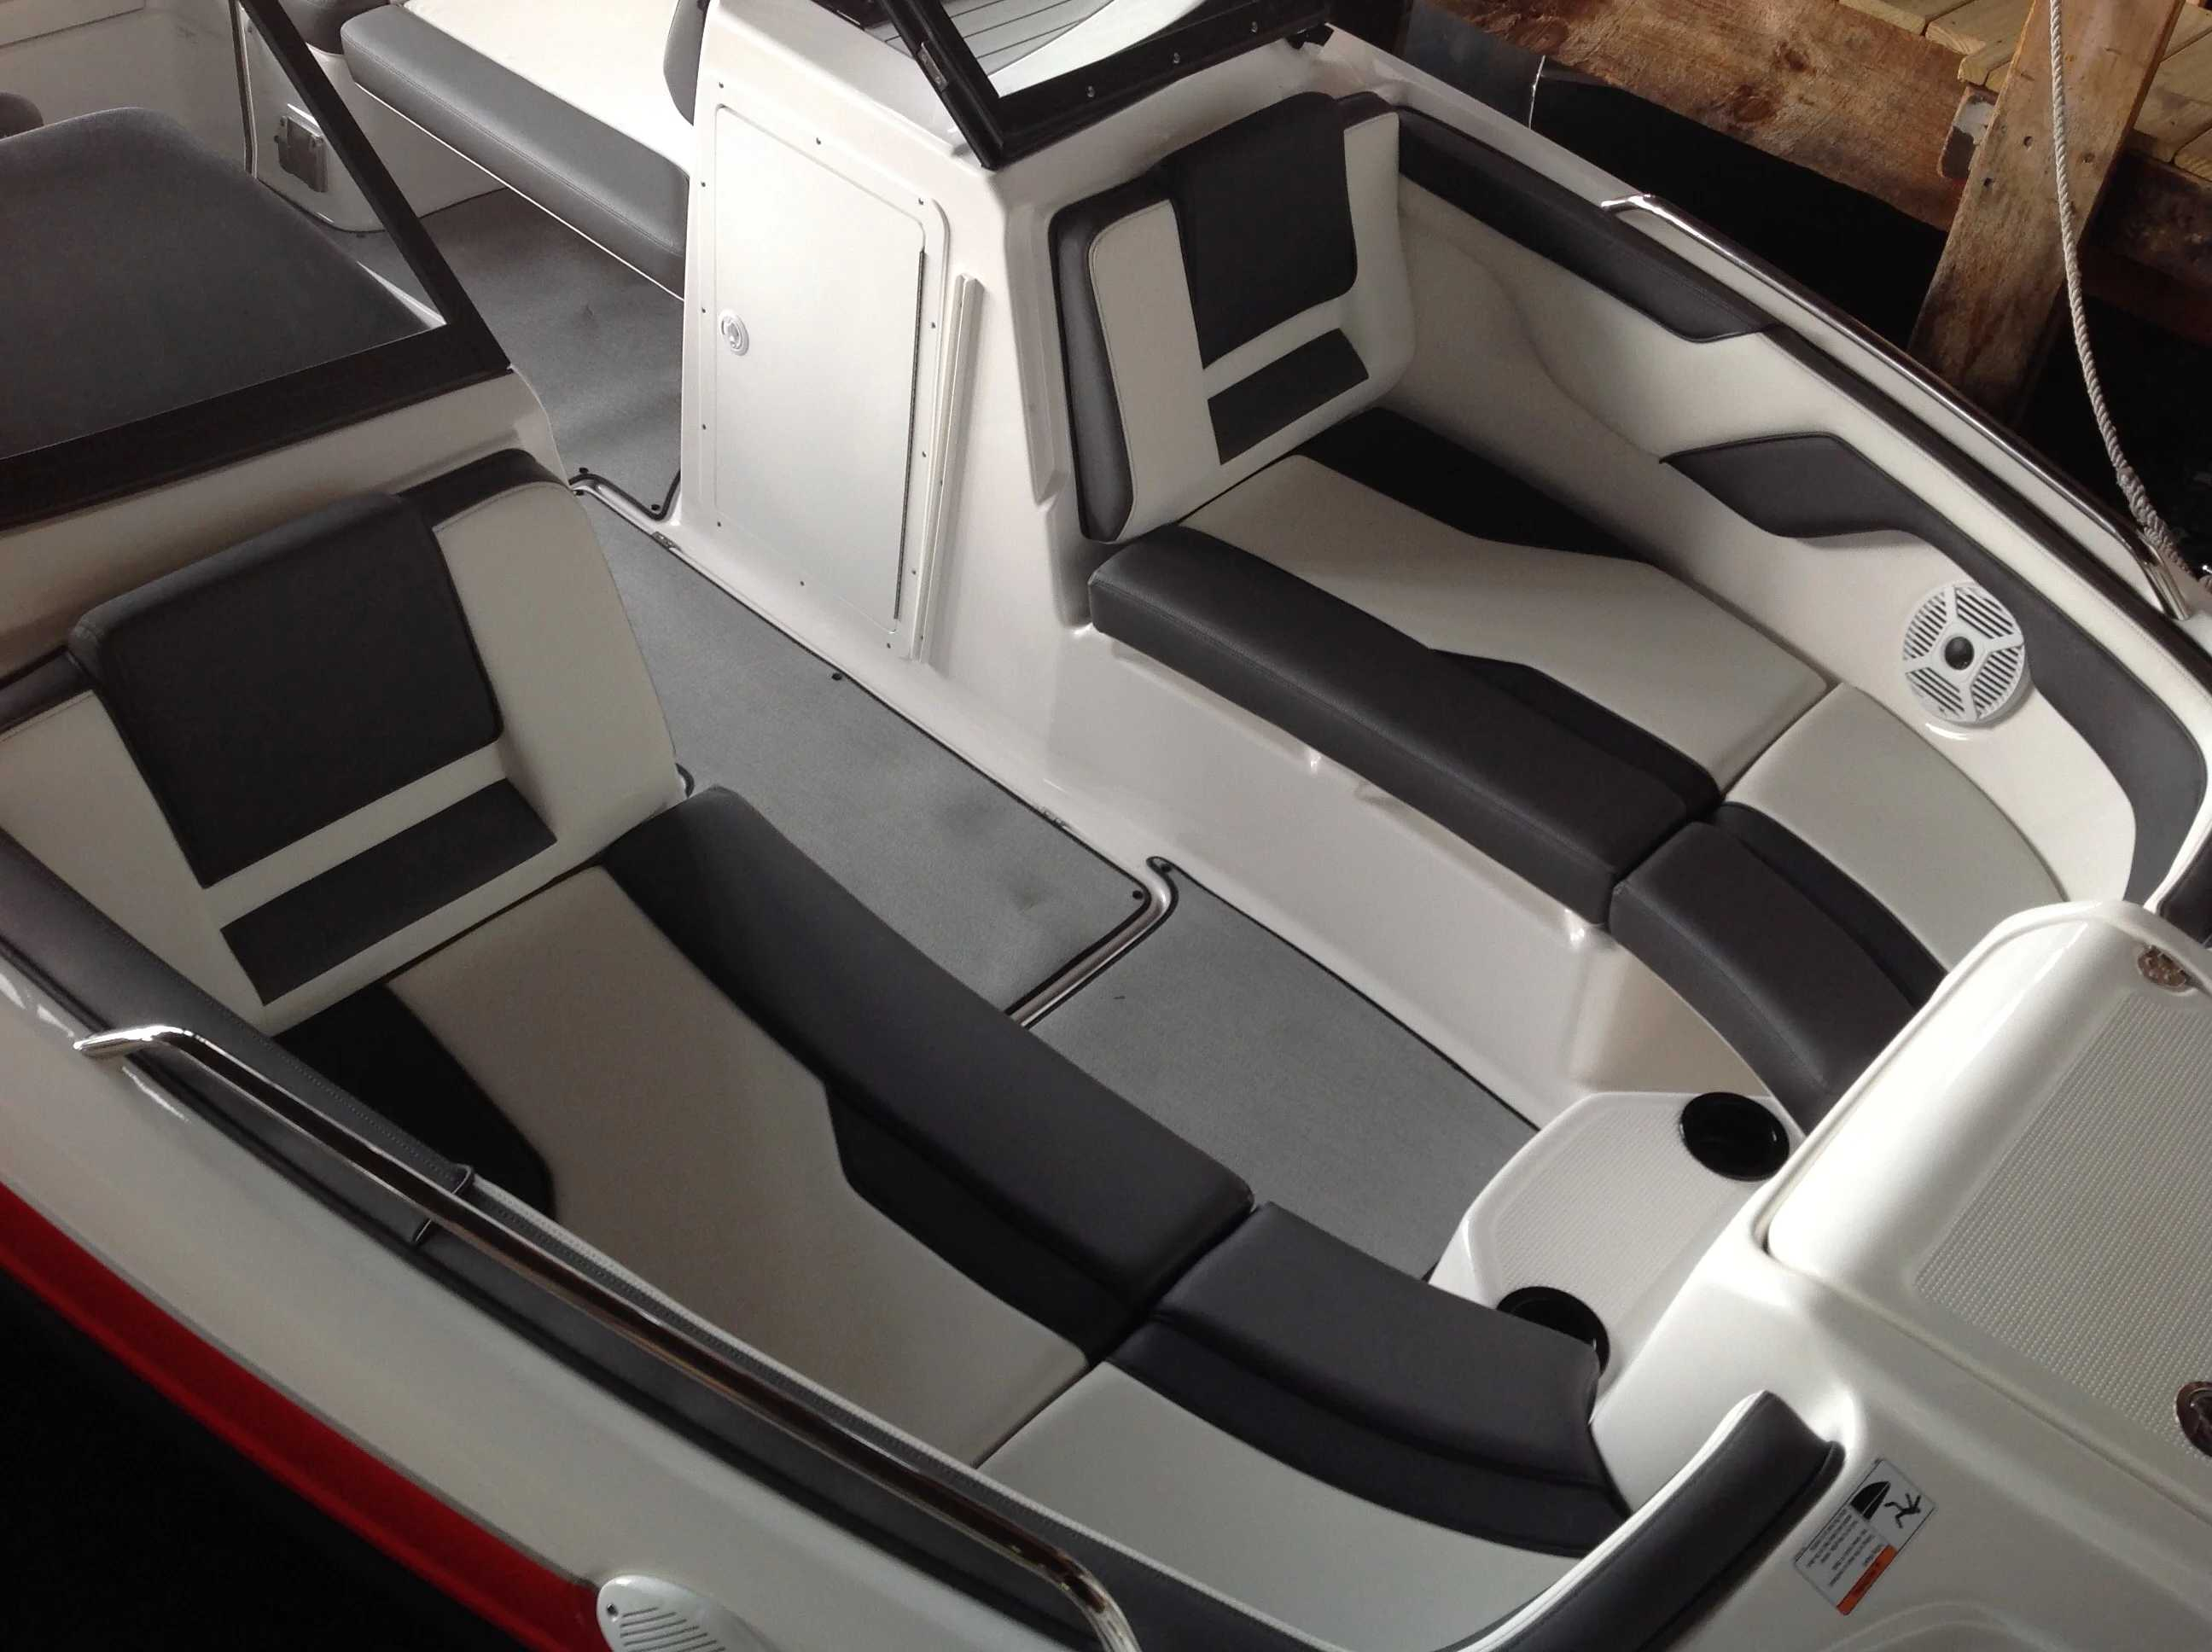 2021 Yamaha boat for sale, model of the boat is Ar210 & Image # 8 of 12